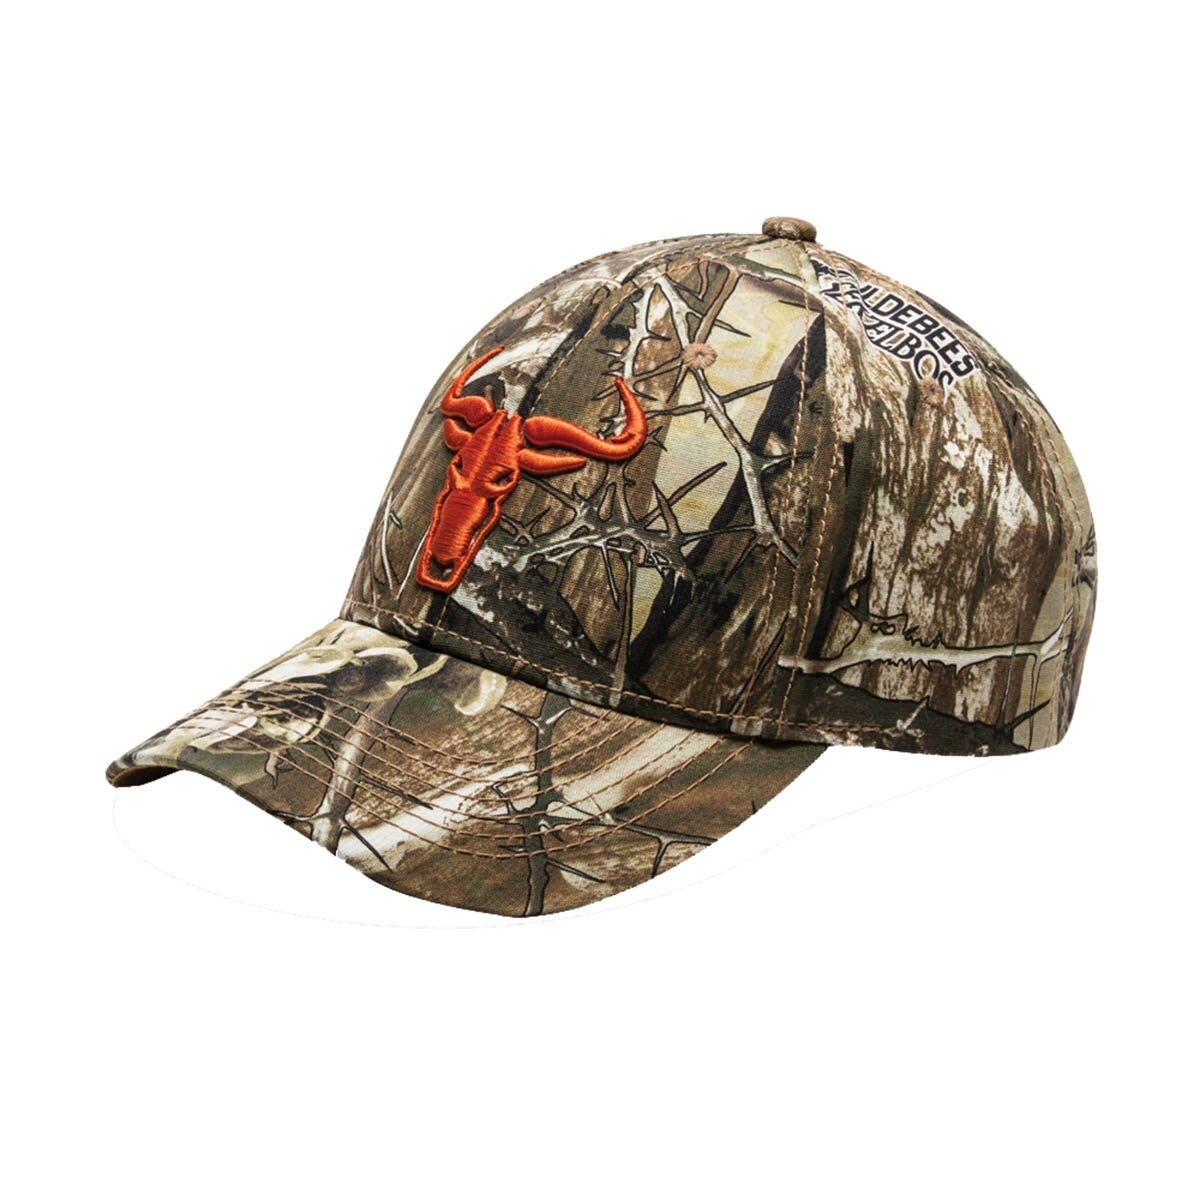 Wildebees Men's Camo Cap